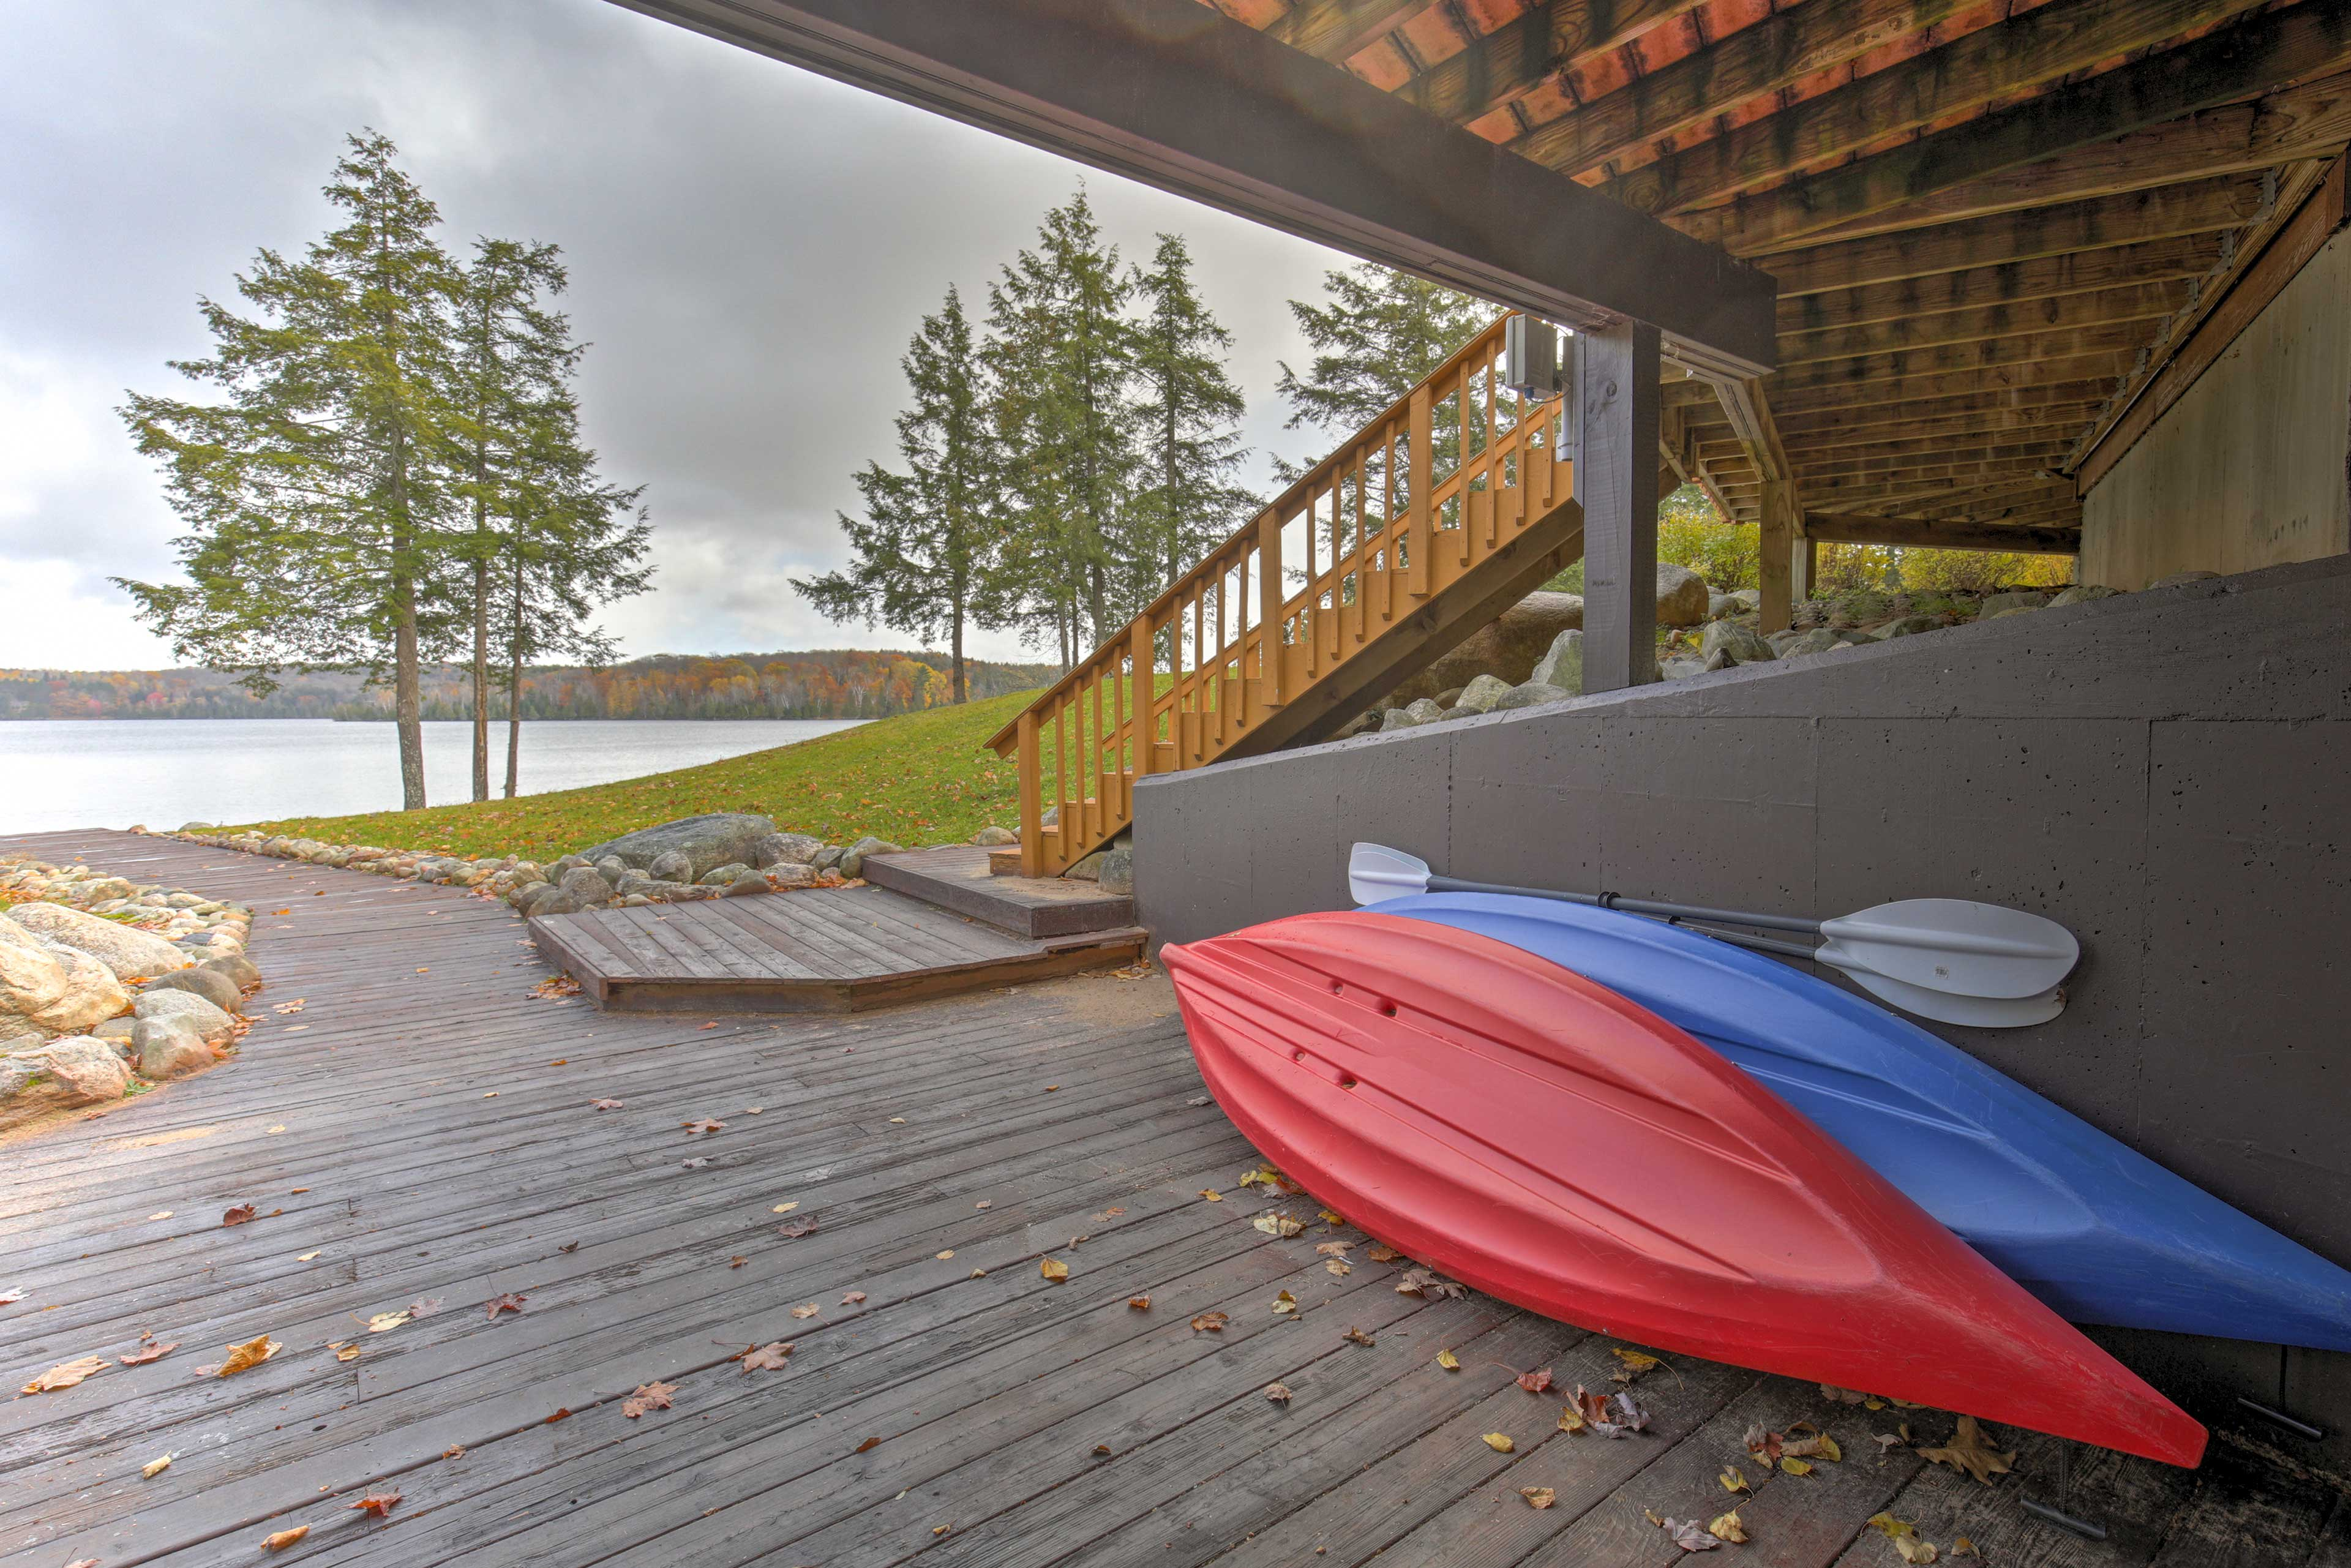 Private Outdoor Space | 2 Kayaks Provided